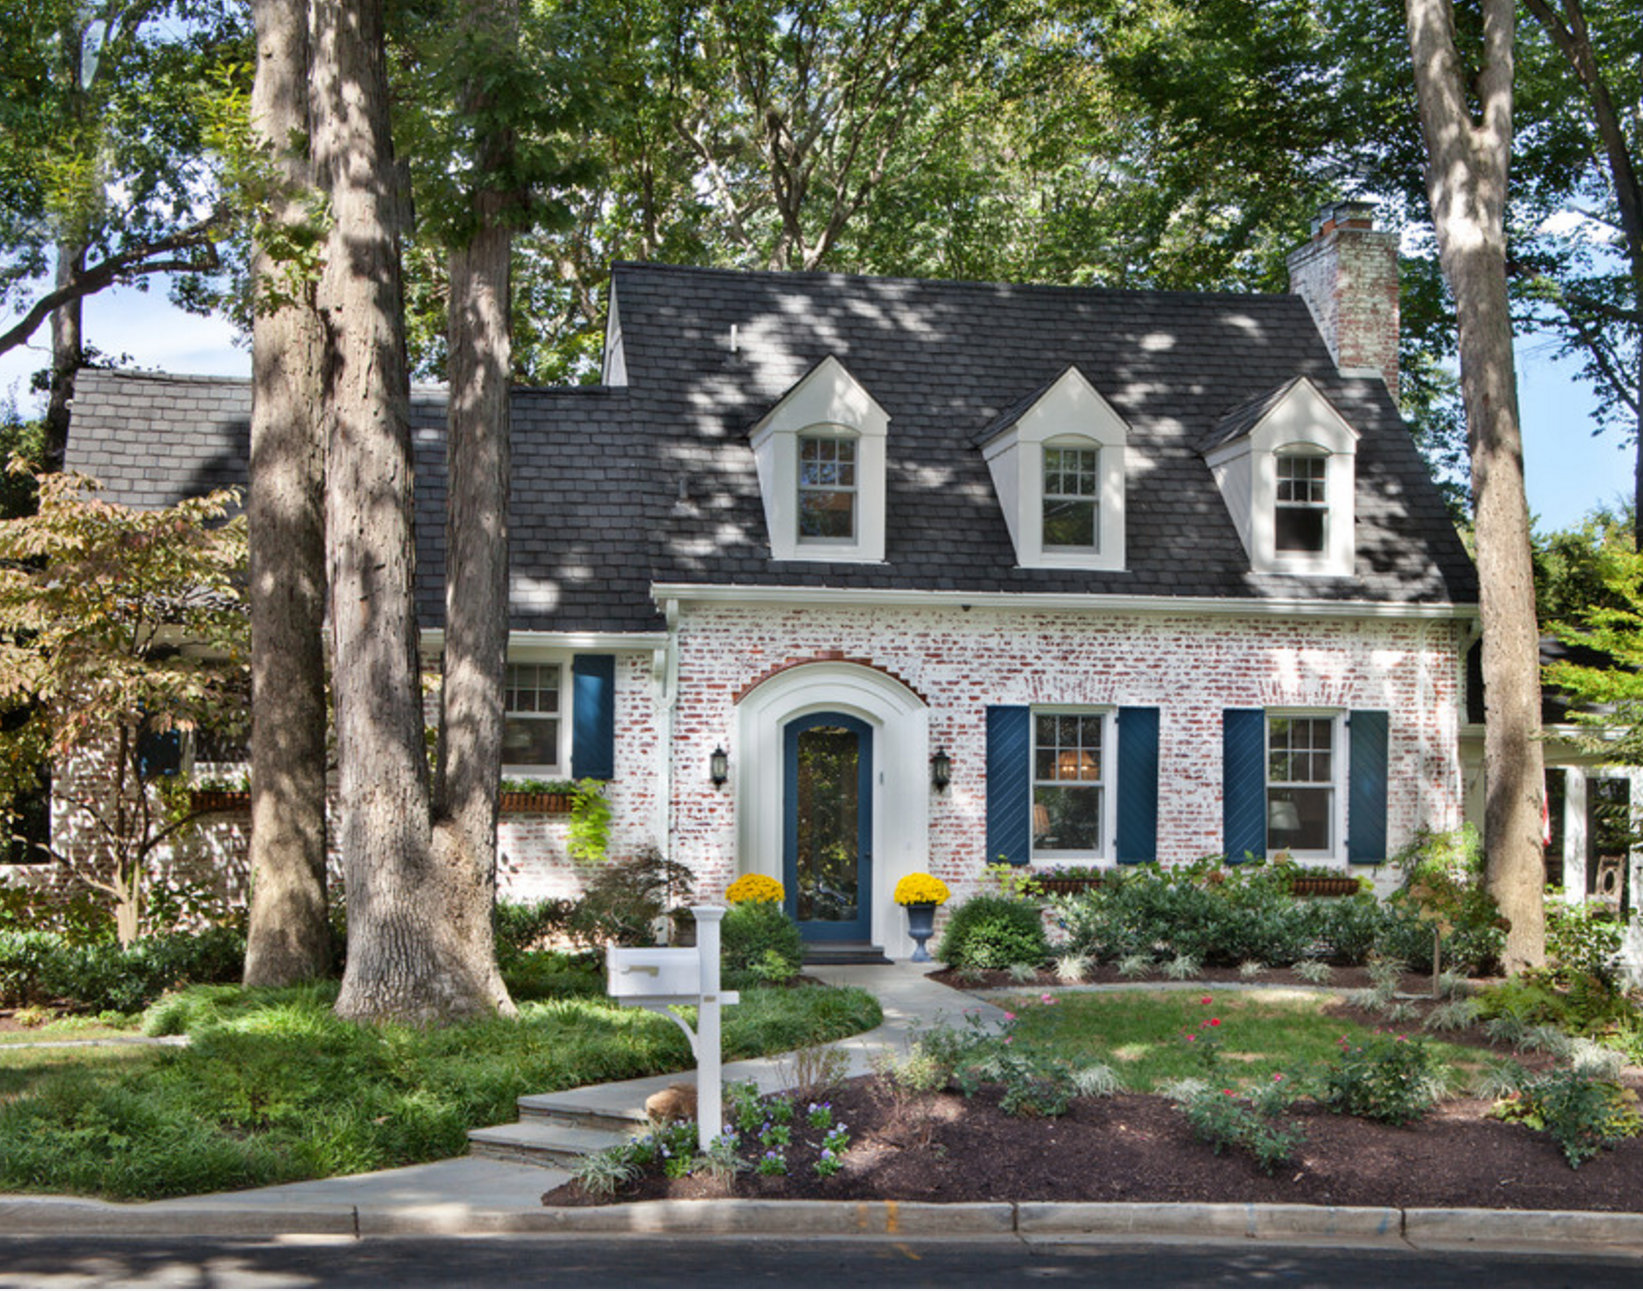 Remodelaholic | Exterior Paint Colors that Add Curb Appeal on